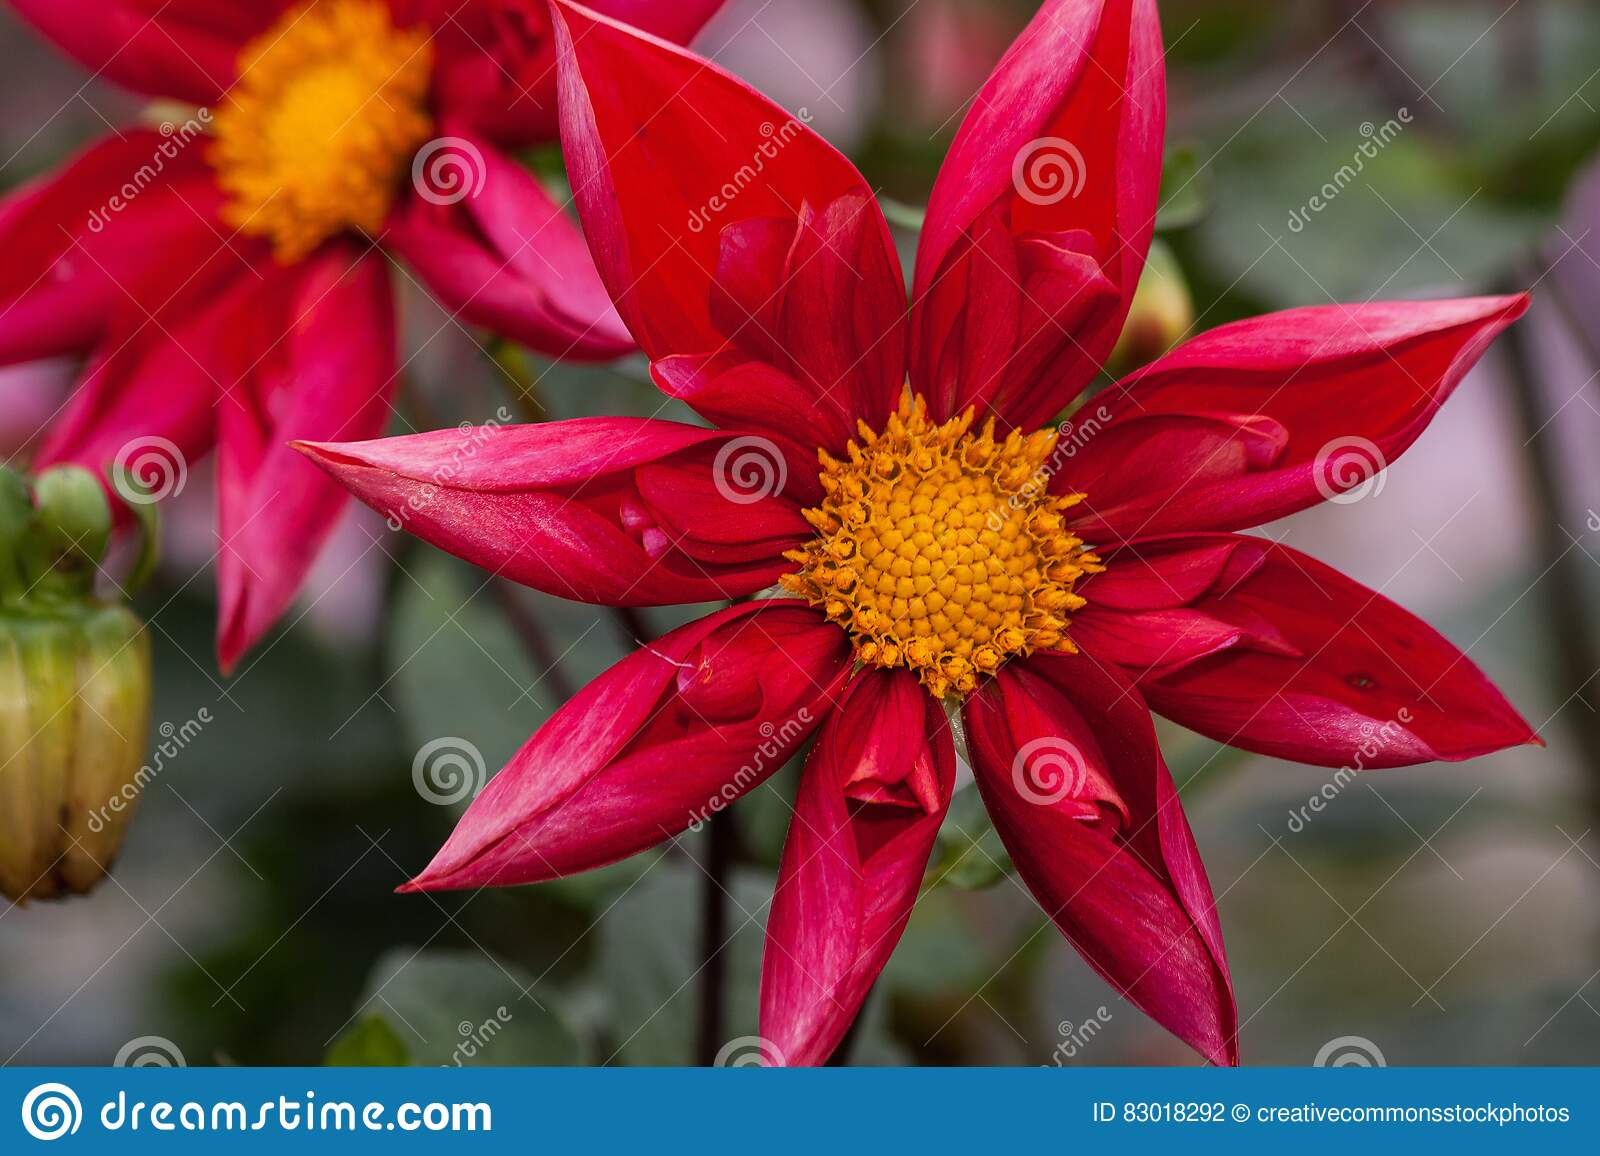 Download Red And Yellow Flower With Green Leaf Stock Photo - Image of flowers, free: 83018292